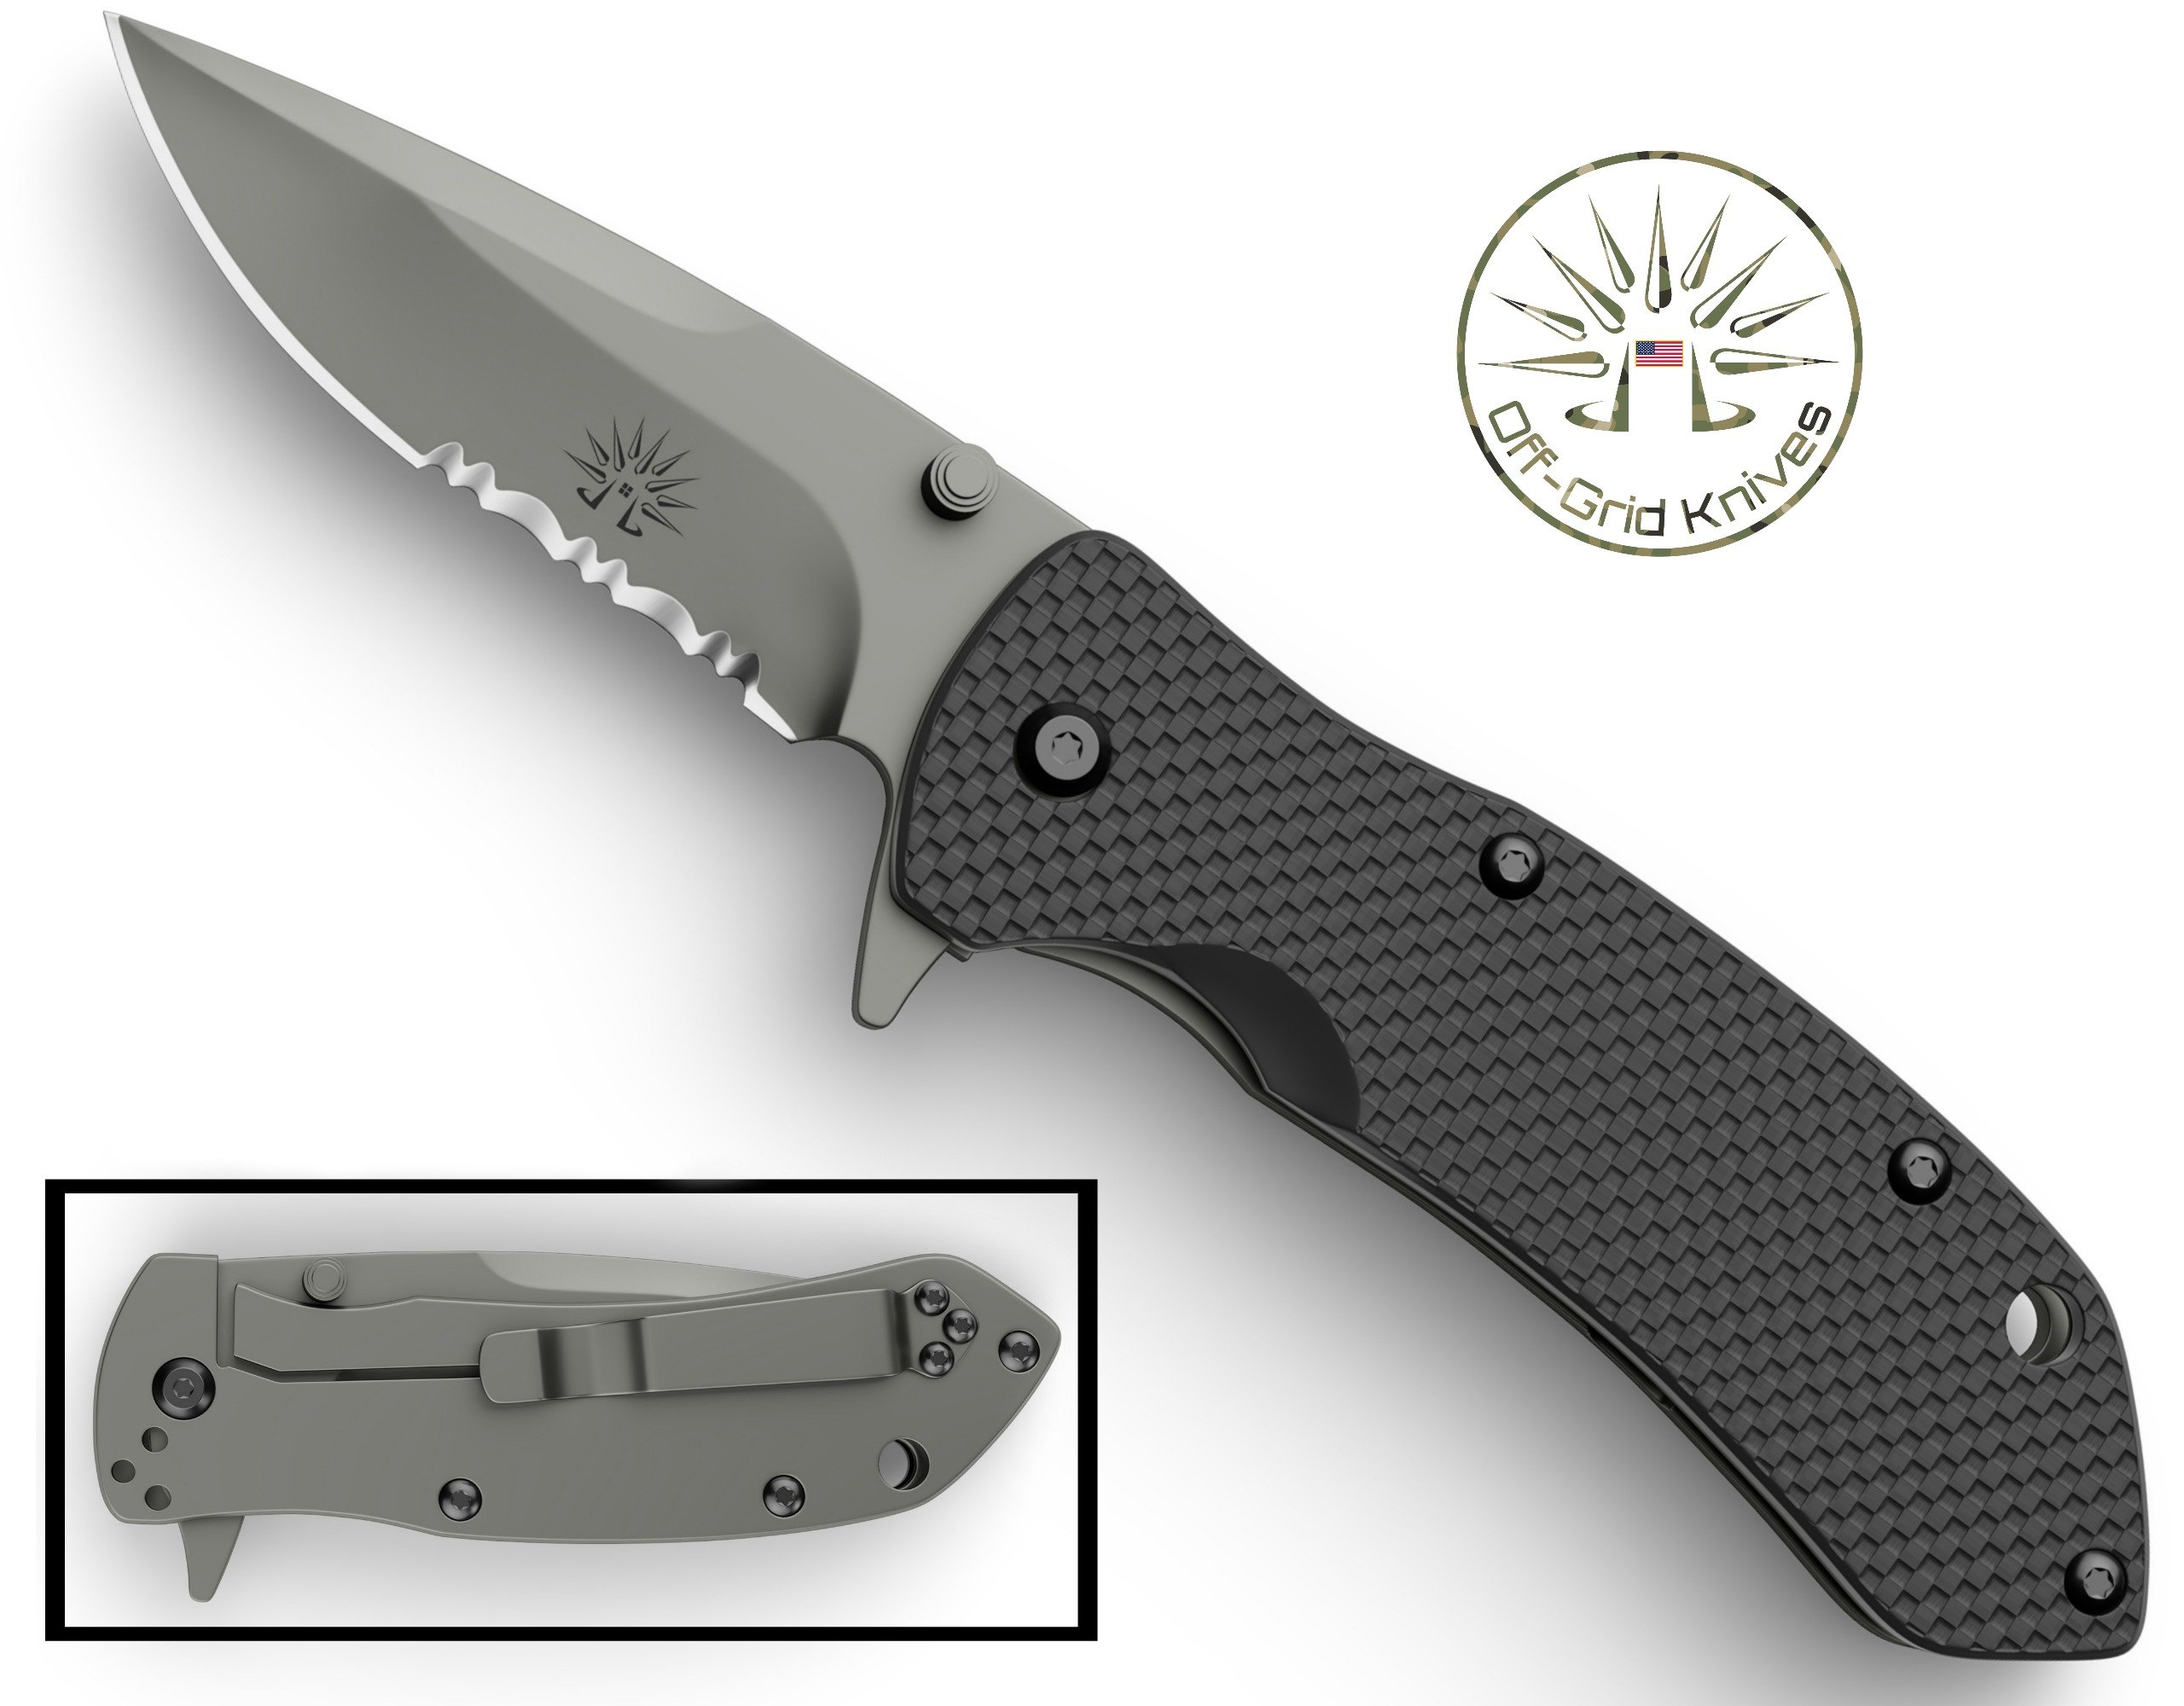 OFF-GRID KNIVES - (OG-808S) All-Day Nano - Compact & Light EDC Pocket Flipper Knife - Frame Lock, Semi-Serrated Japanese AUS8 Blade, G10 Grip, Dual Position Clip - Perfect Fishing Tool